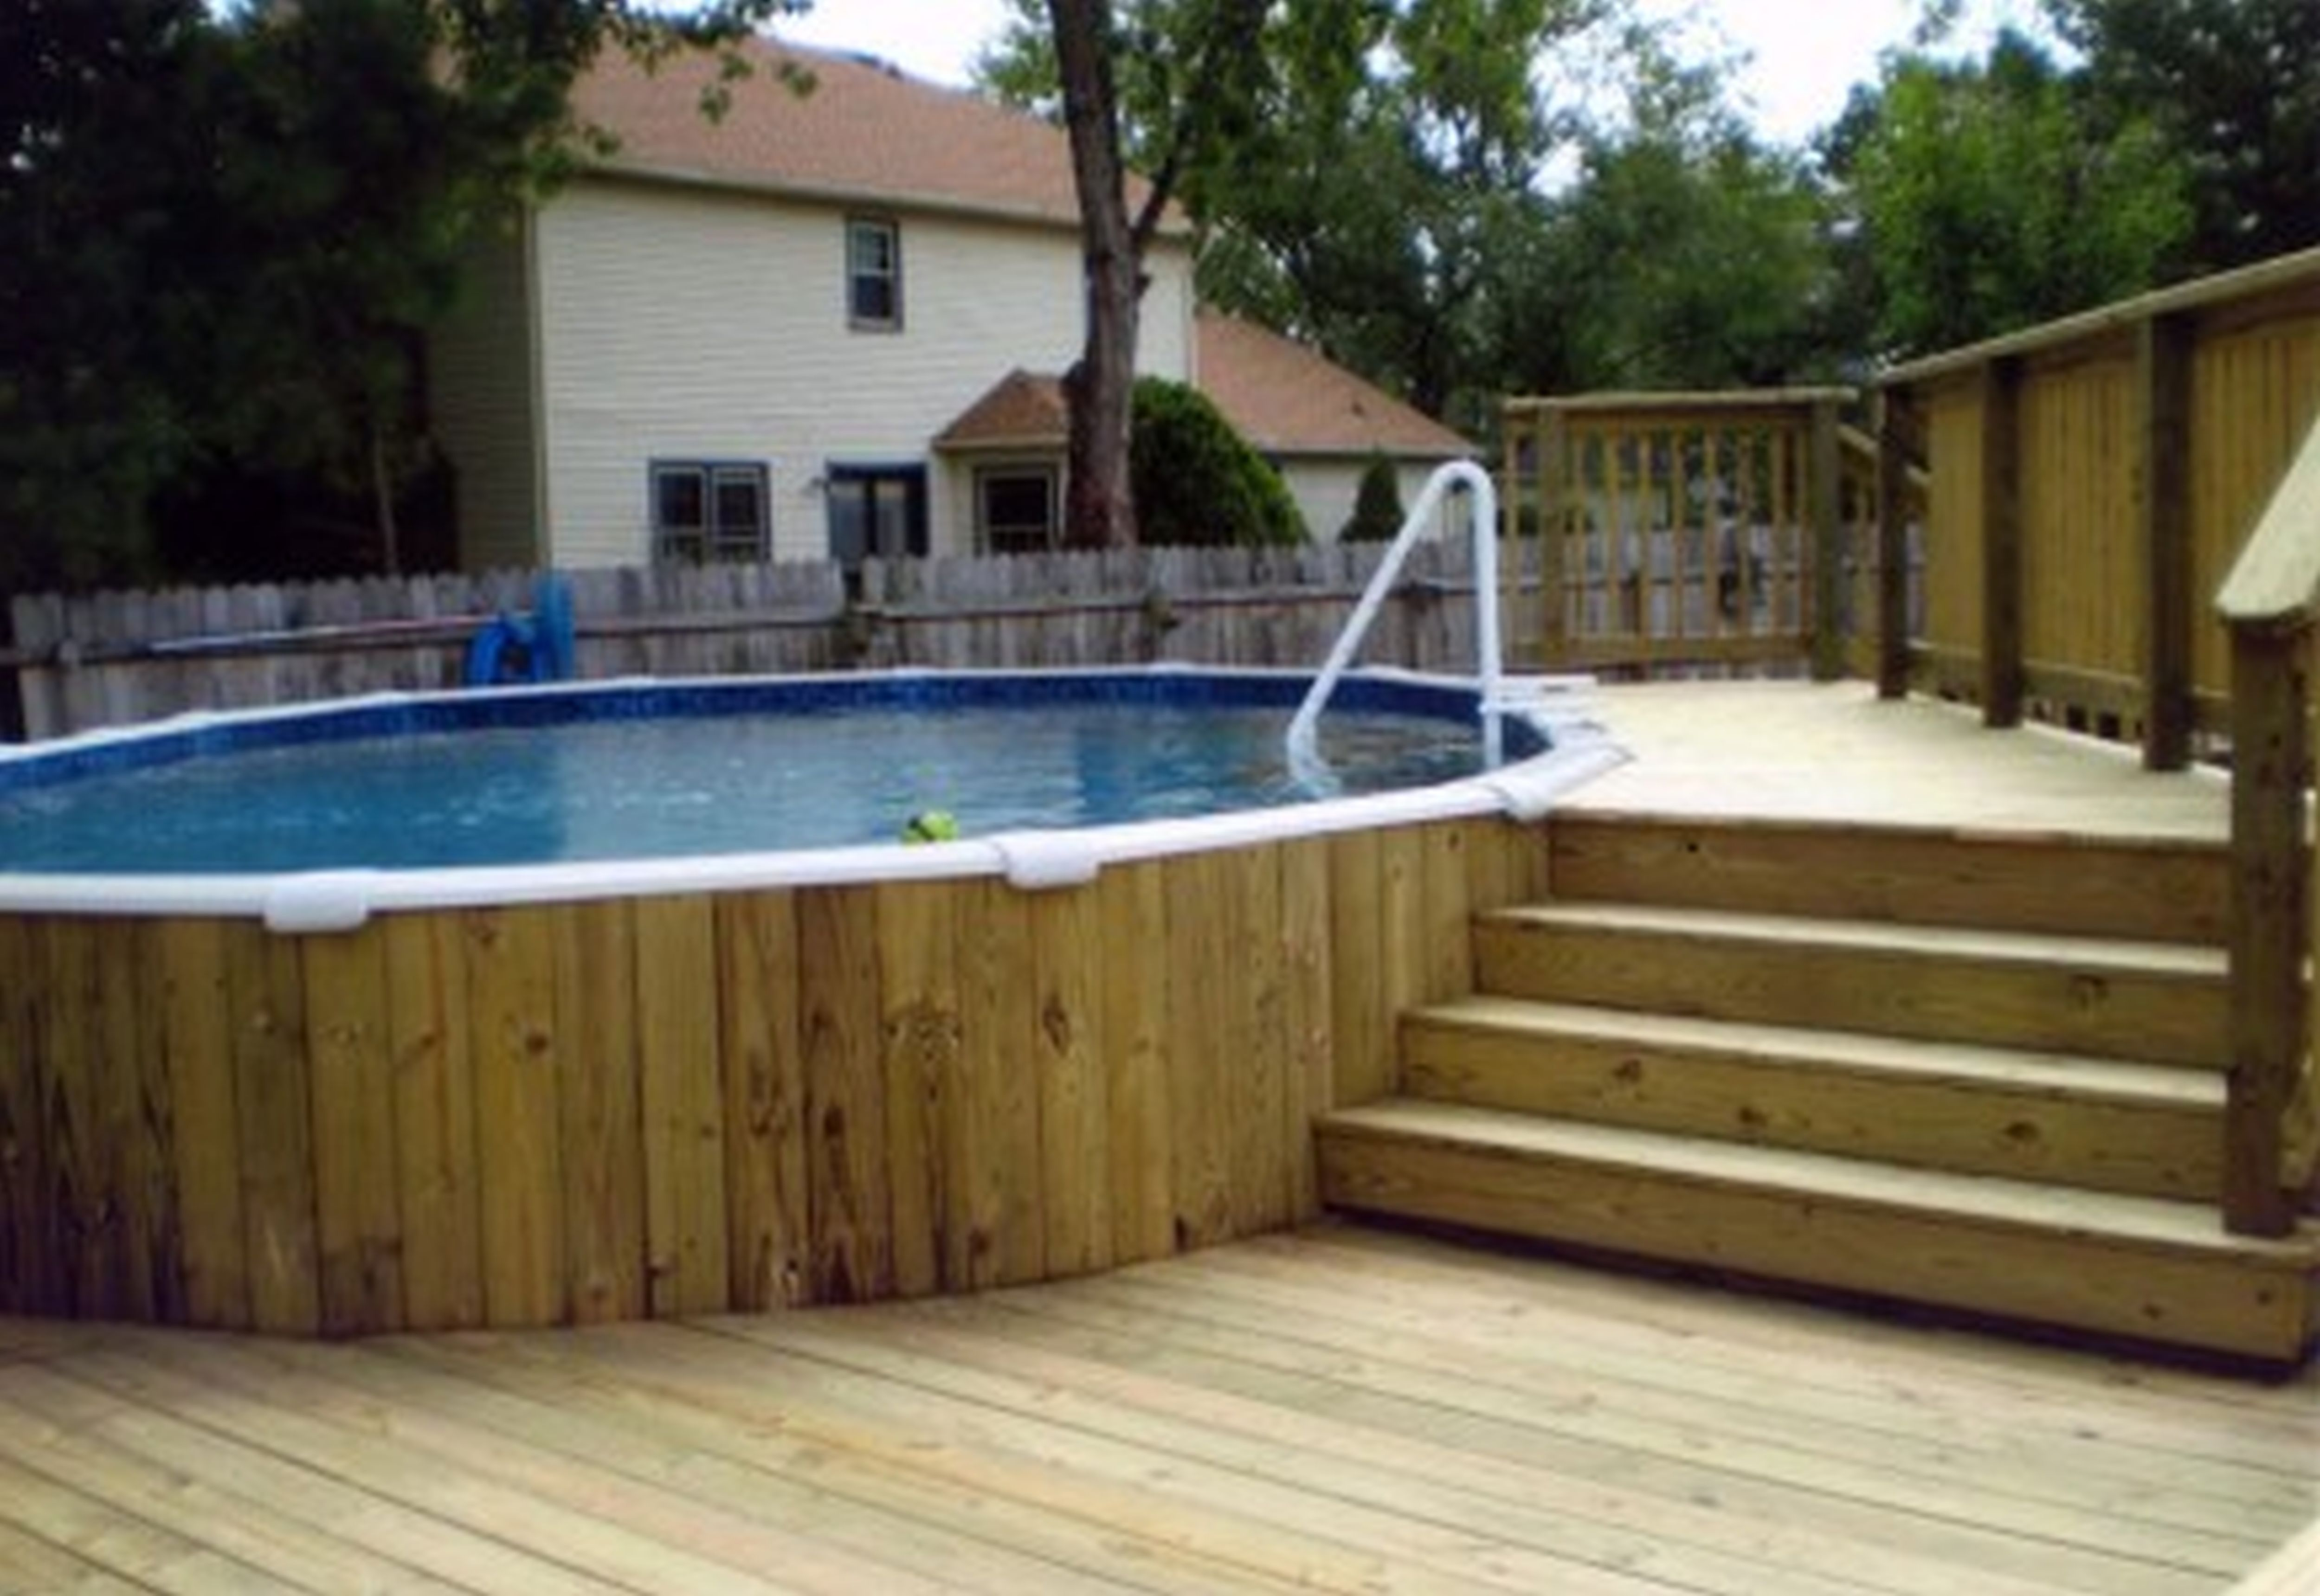 Faboulus Decorating for Pool Deck Ideas with Best Wooden Material and Nice Ramp